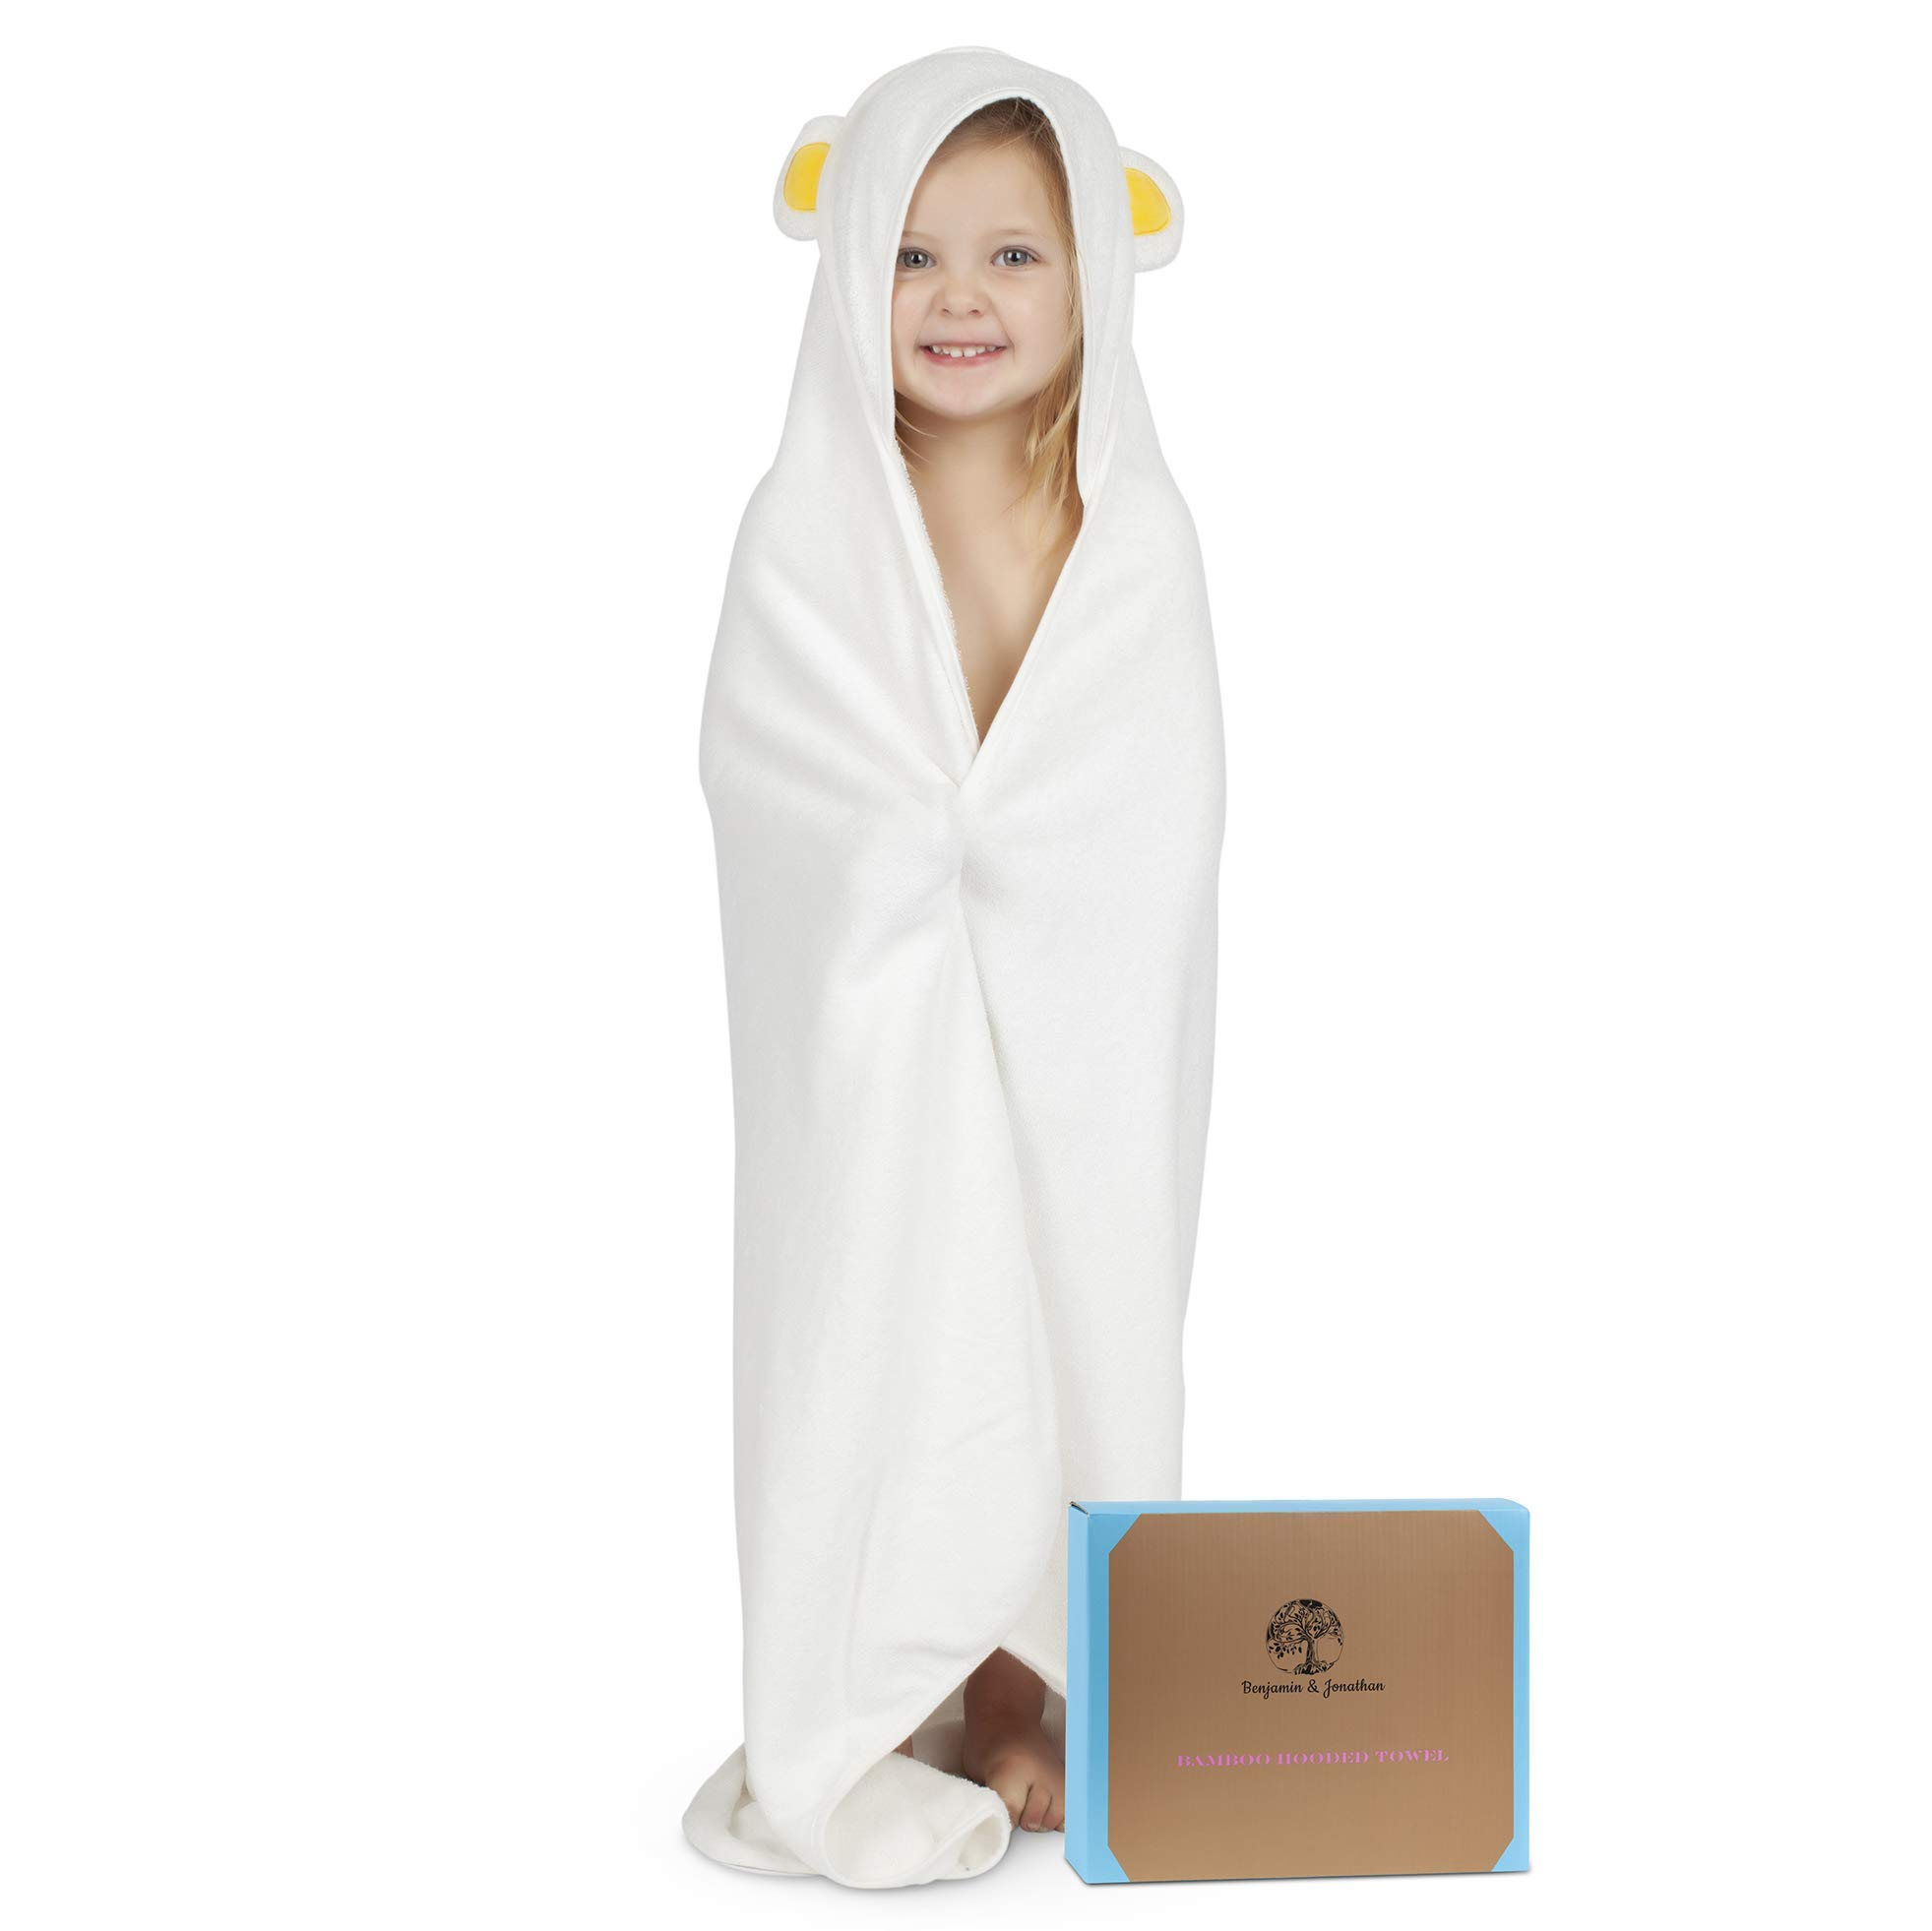 Luxurious Hooded Baby Towel   Ultra Soft and Absorbent Organic Bamboo Bath Towel   Hypoallergenic with Cute Bear Ears by Benjamin&Jonathan   Perfect for Baby Shower Gift for Boy&Girl,Infant-Toddler